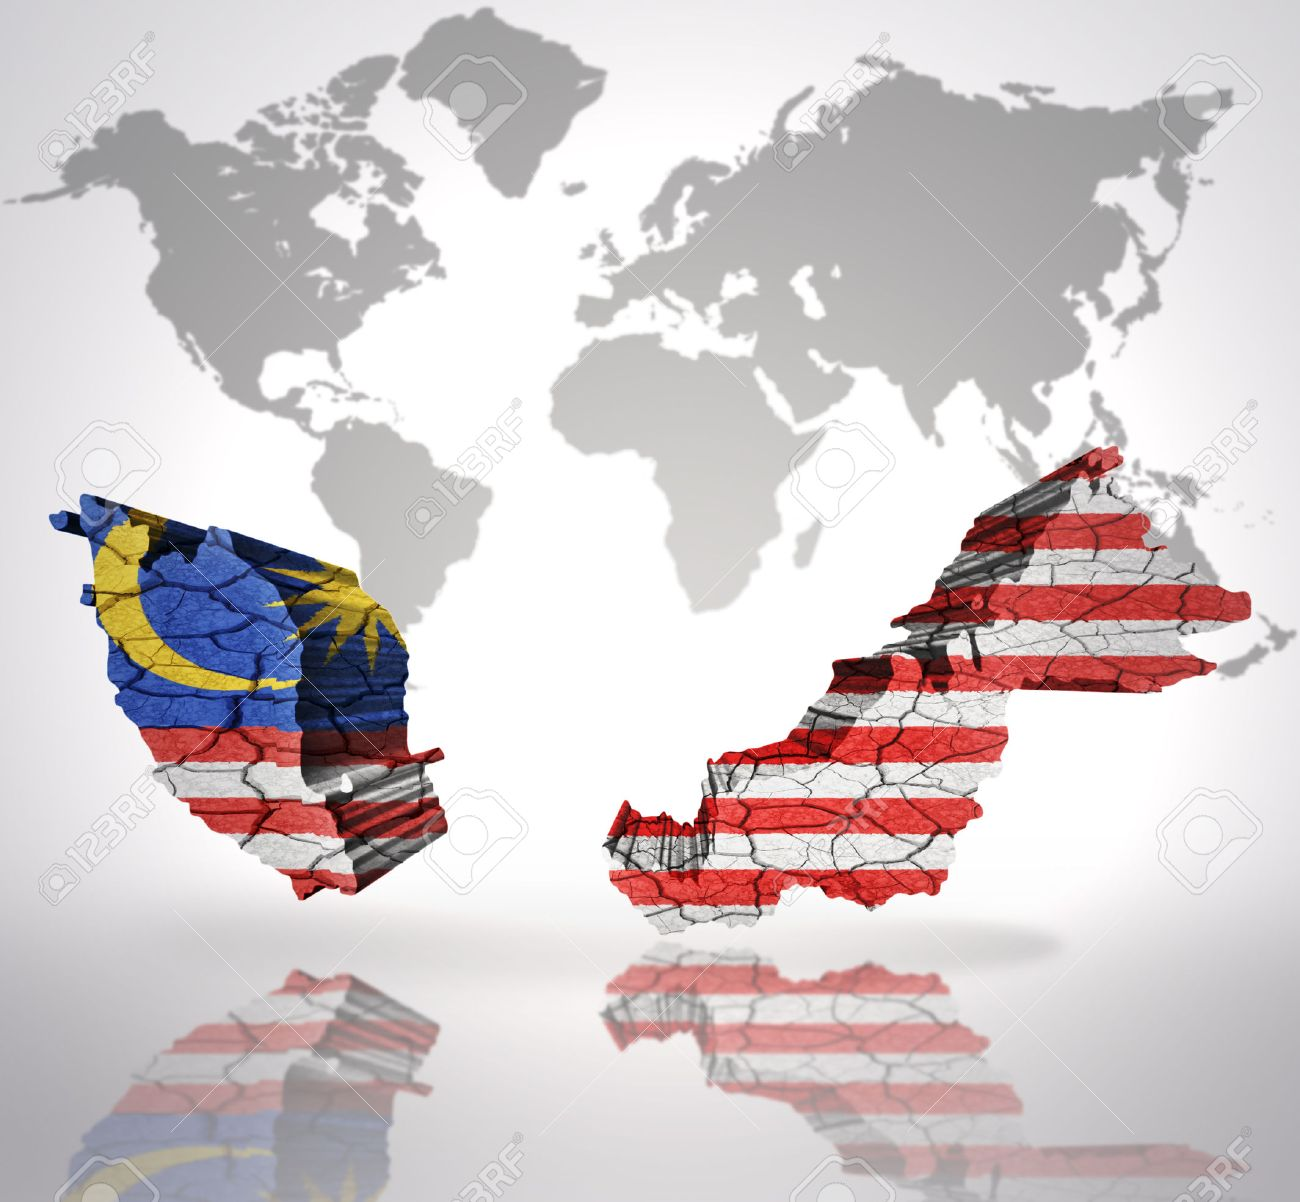 Map of malaysia with malaysian flag on a world map background stock map of malaysia with malaysian flag on a world map background stock photo 32849758 gumiabroncs Choice Image